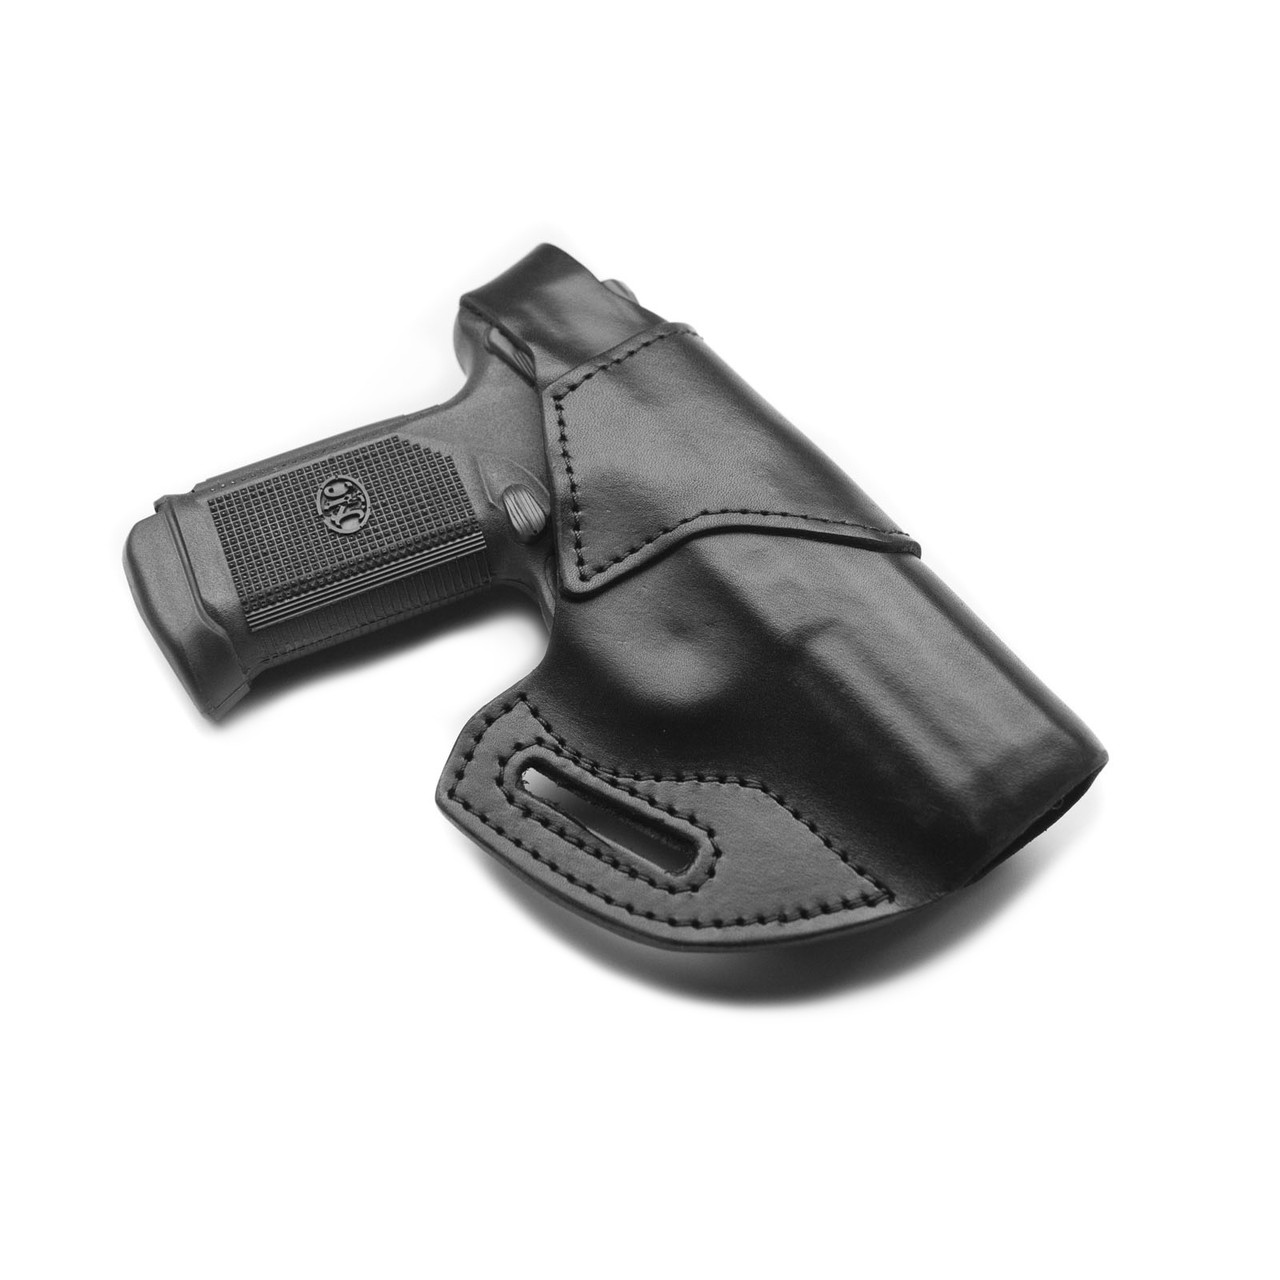 FNX-45 Talon OWB Outside the Waistband Holster